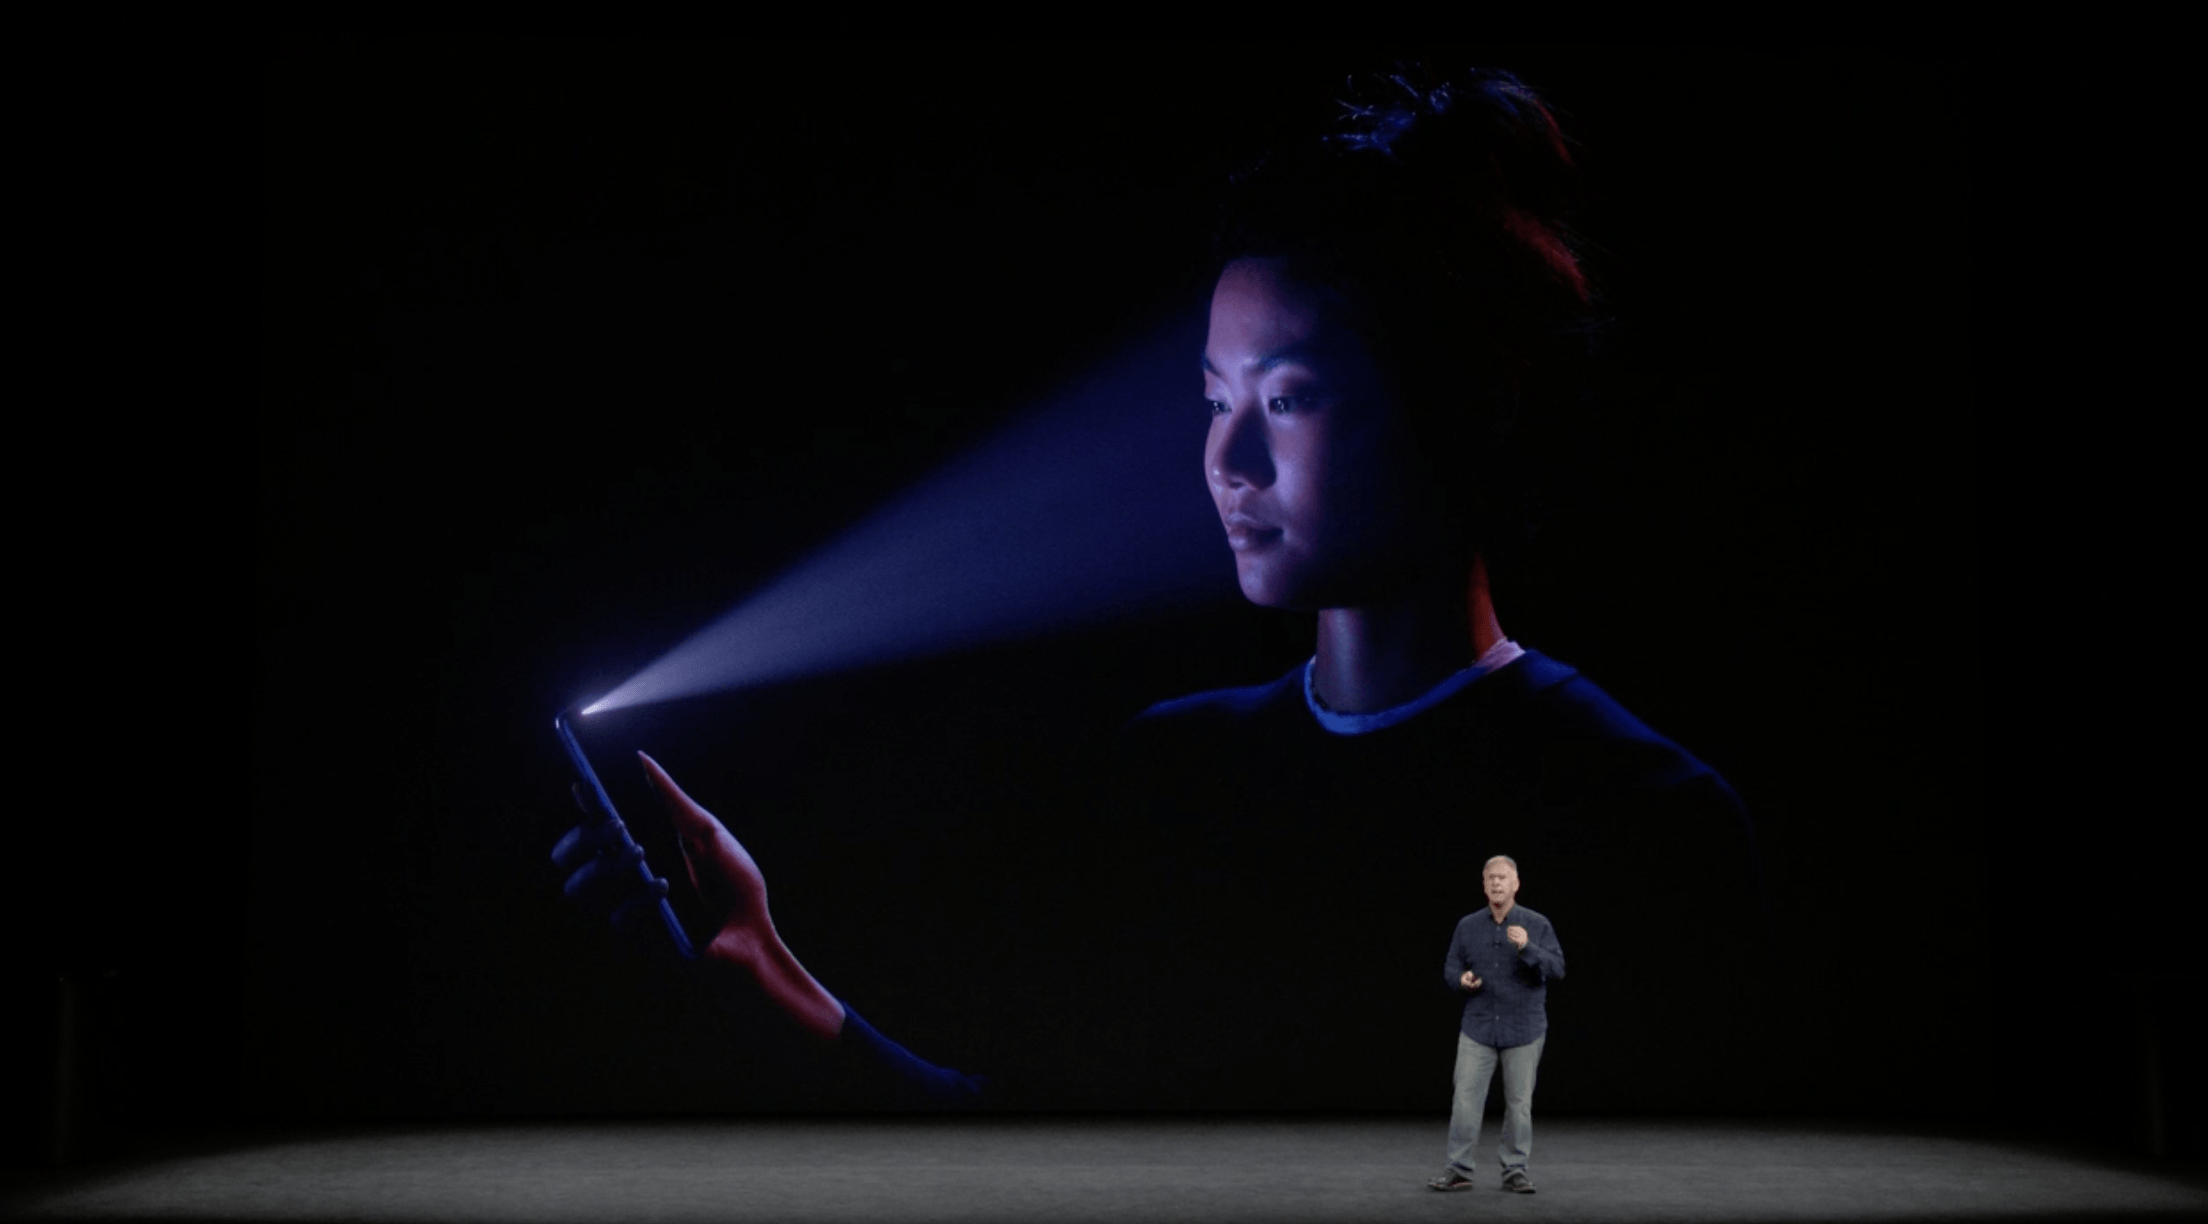 Suivez la Keynote Apple en direct commenté à partir de 19h